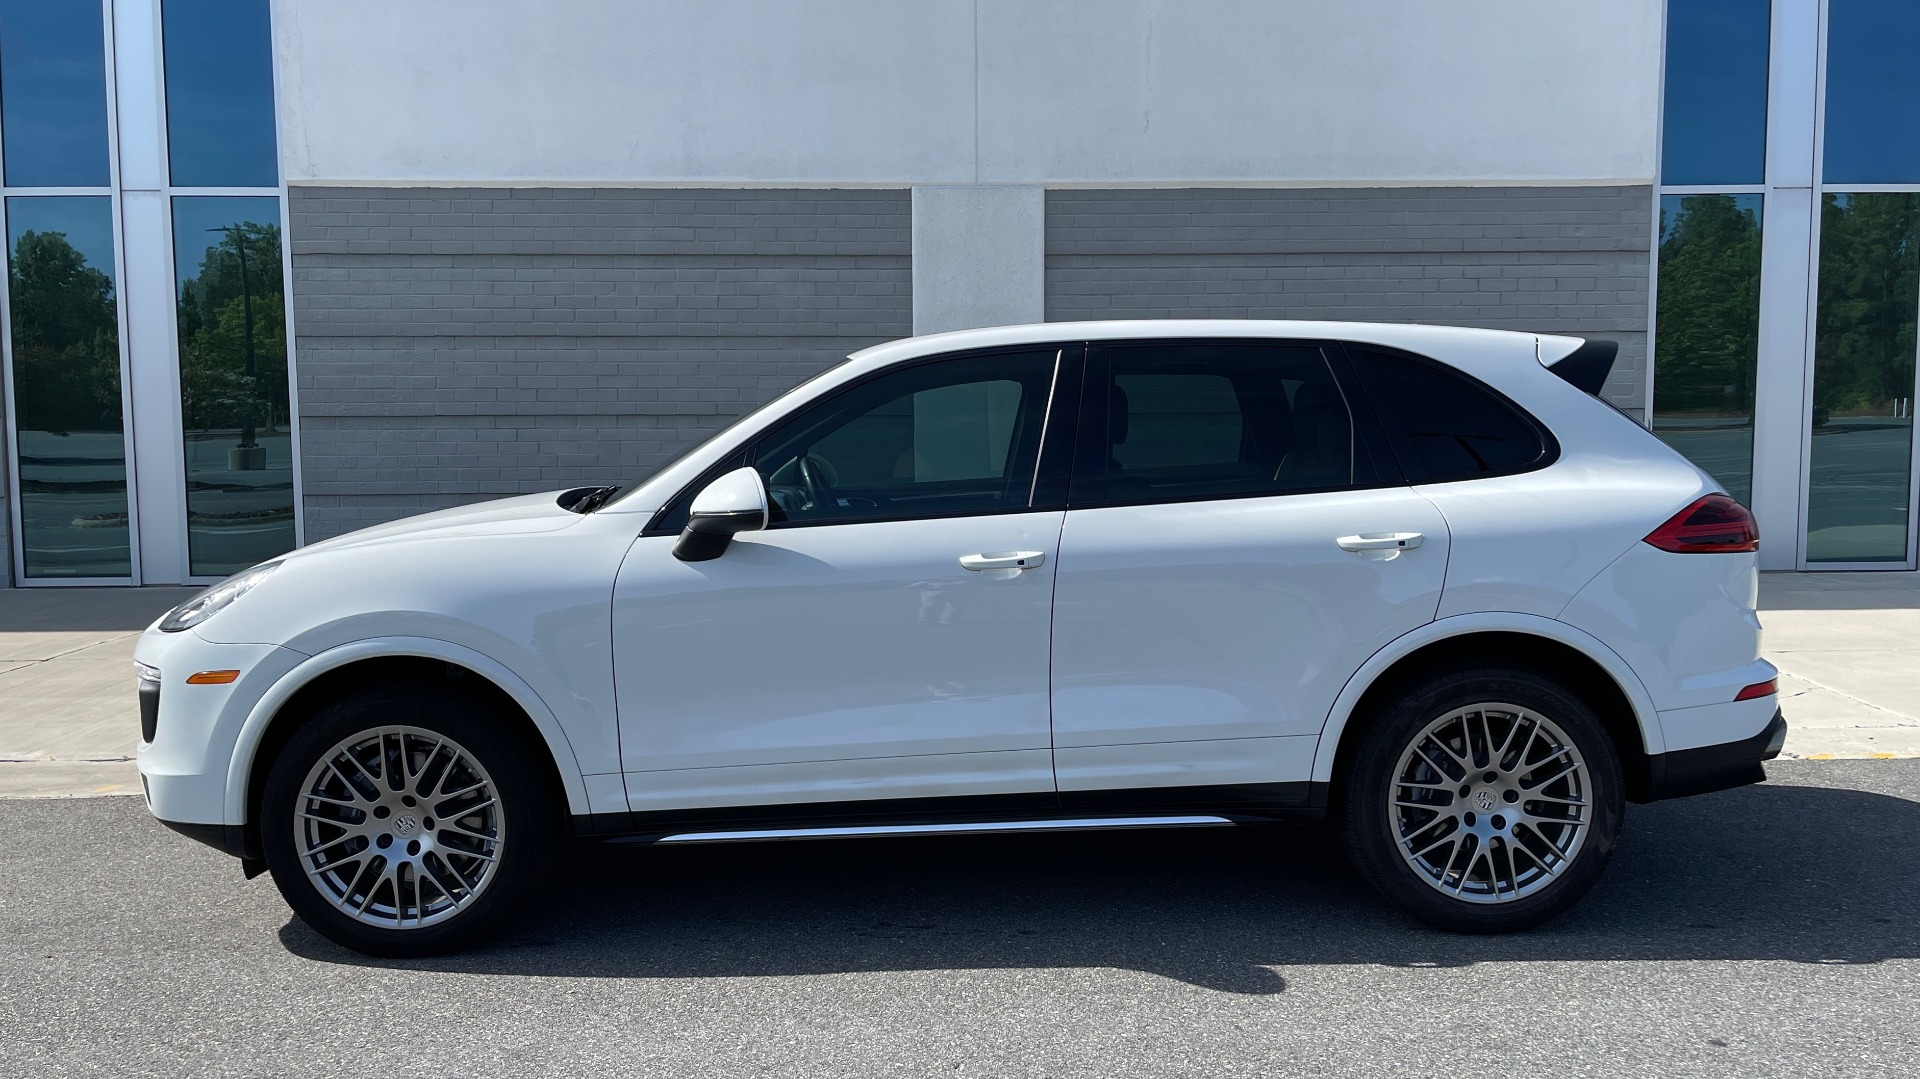 Used 2016 Porsche CAYENNE AWD / 3.6L TURBO / PREMIUM / BOSE / PANO-ROOF / NAV / LCA for sale $32,995 at Formula Imports in Charlotte NC 28227 4